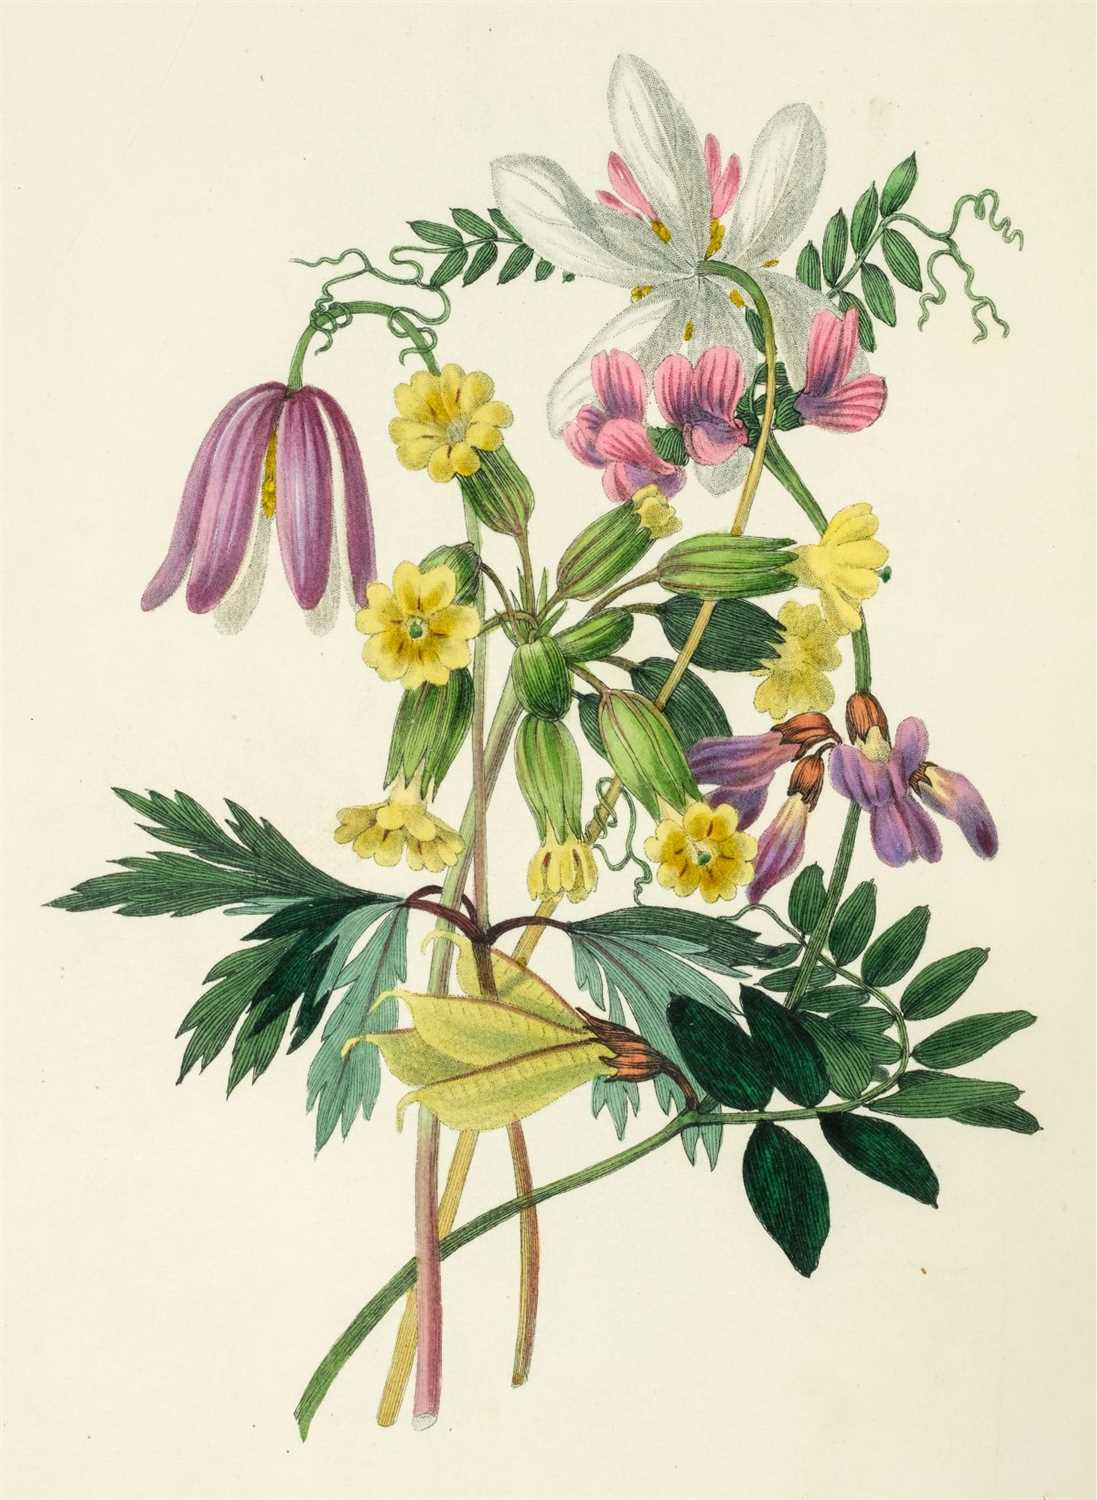 Lot 370 - Hey (Rebecca). The Moral of Flowers, 1833